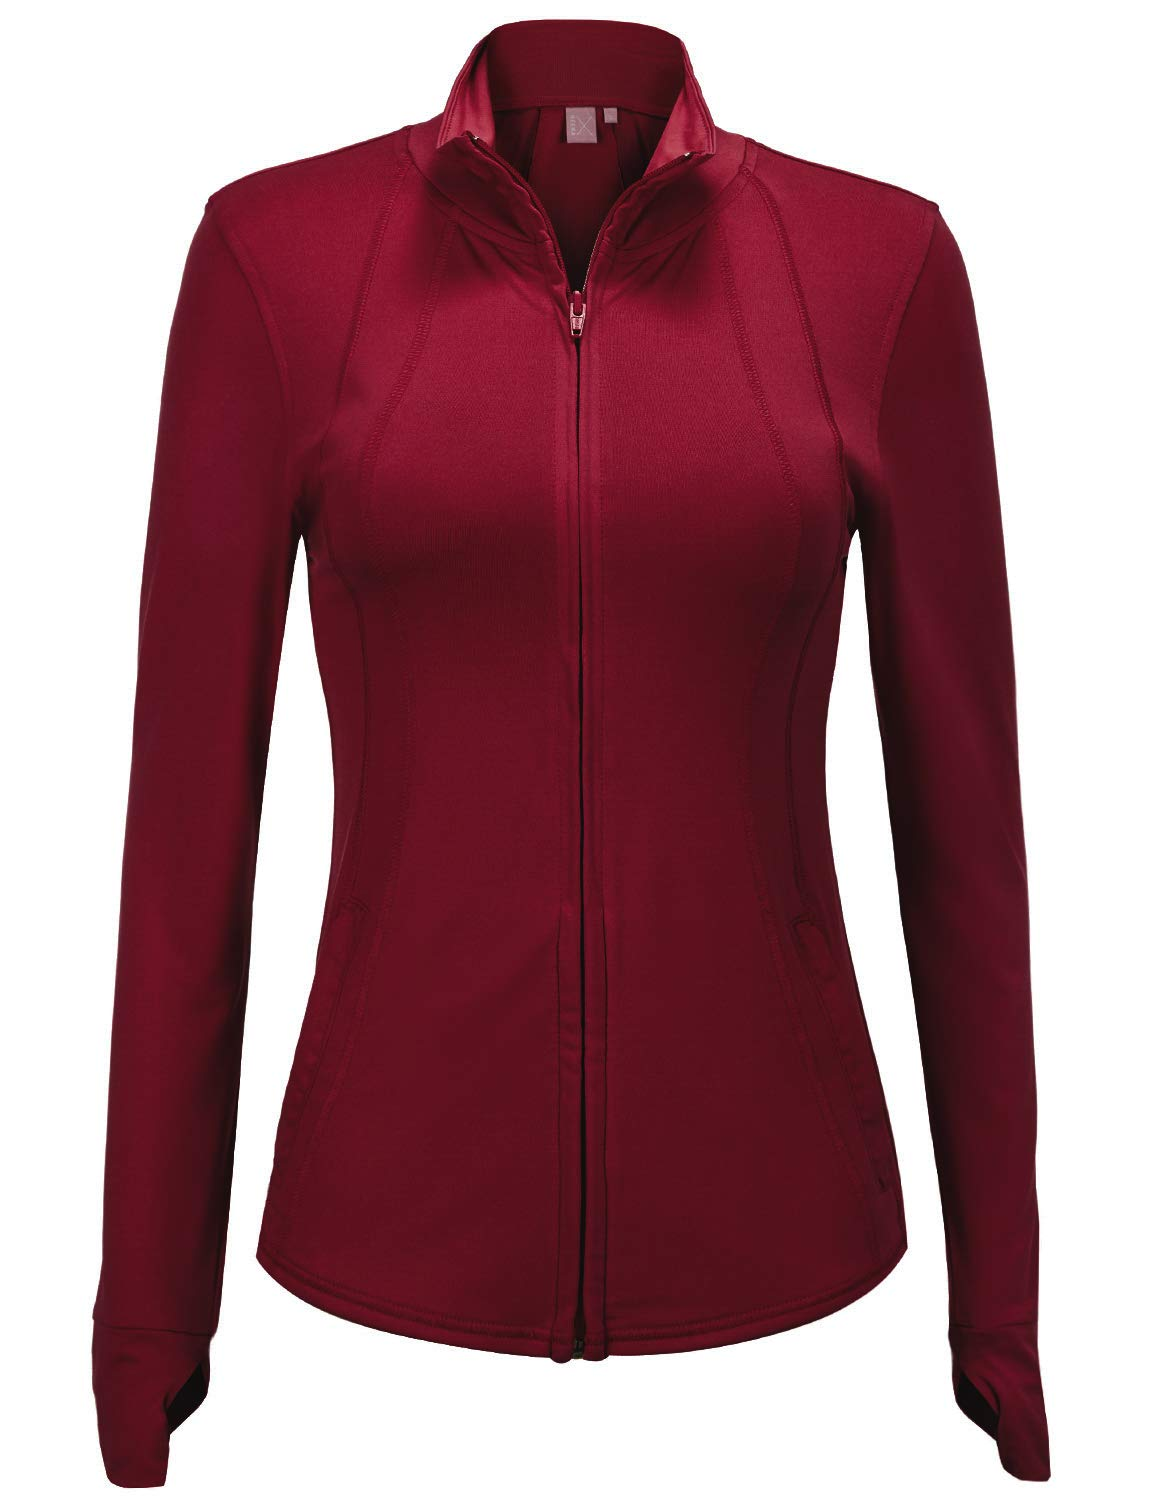 Regna X Women's Full Zip Up Cotton Spandex Athletic Track Jacket Wine S